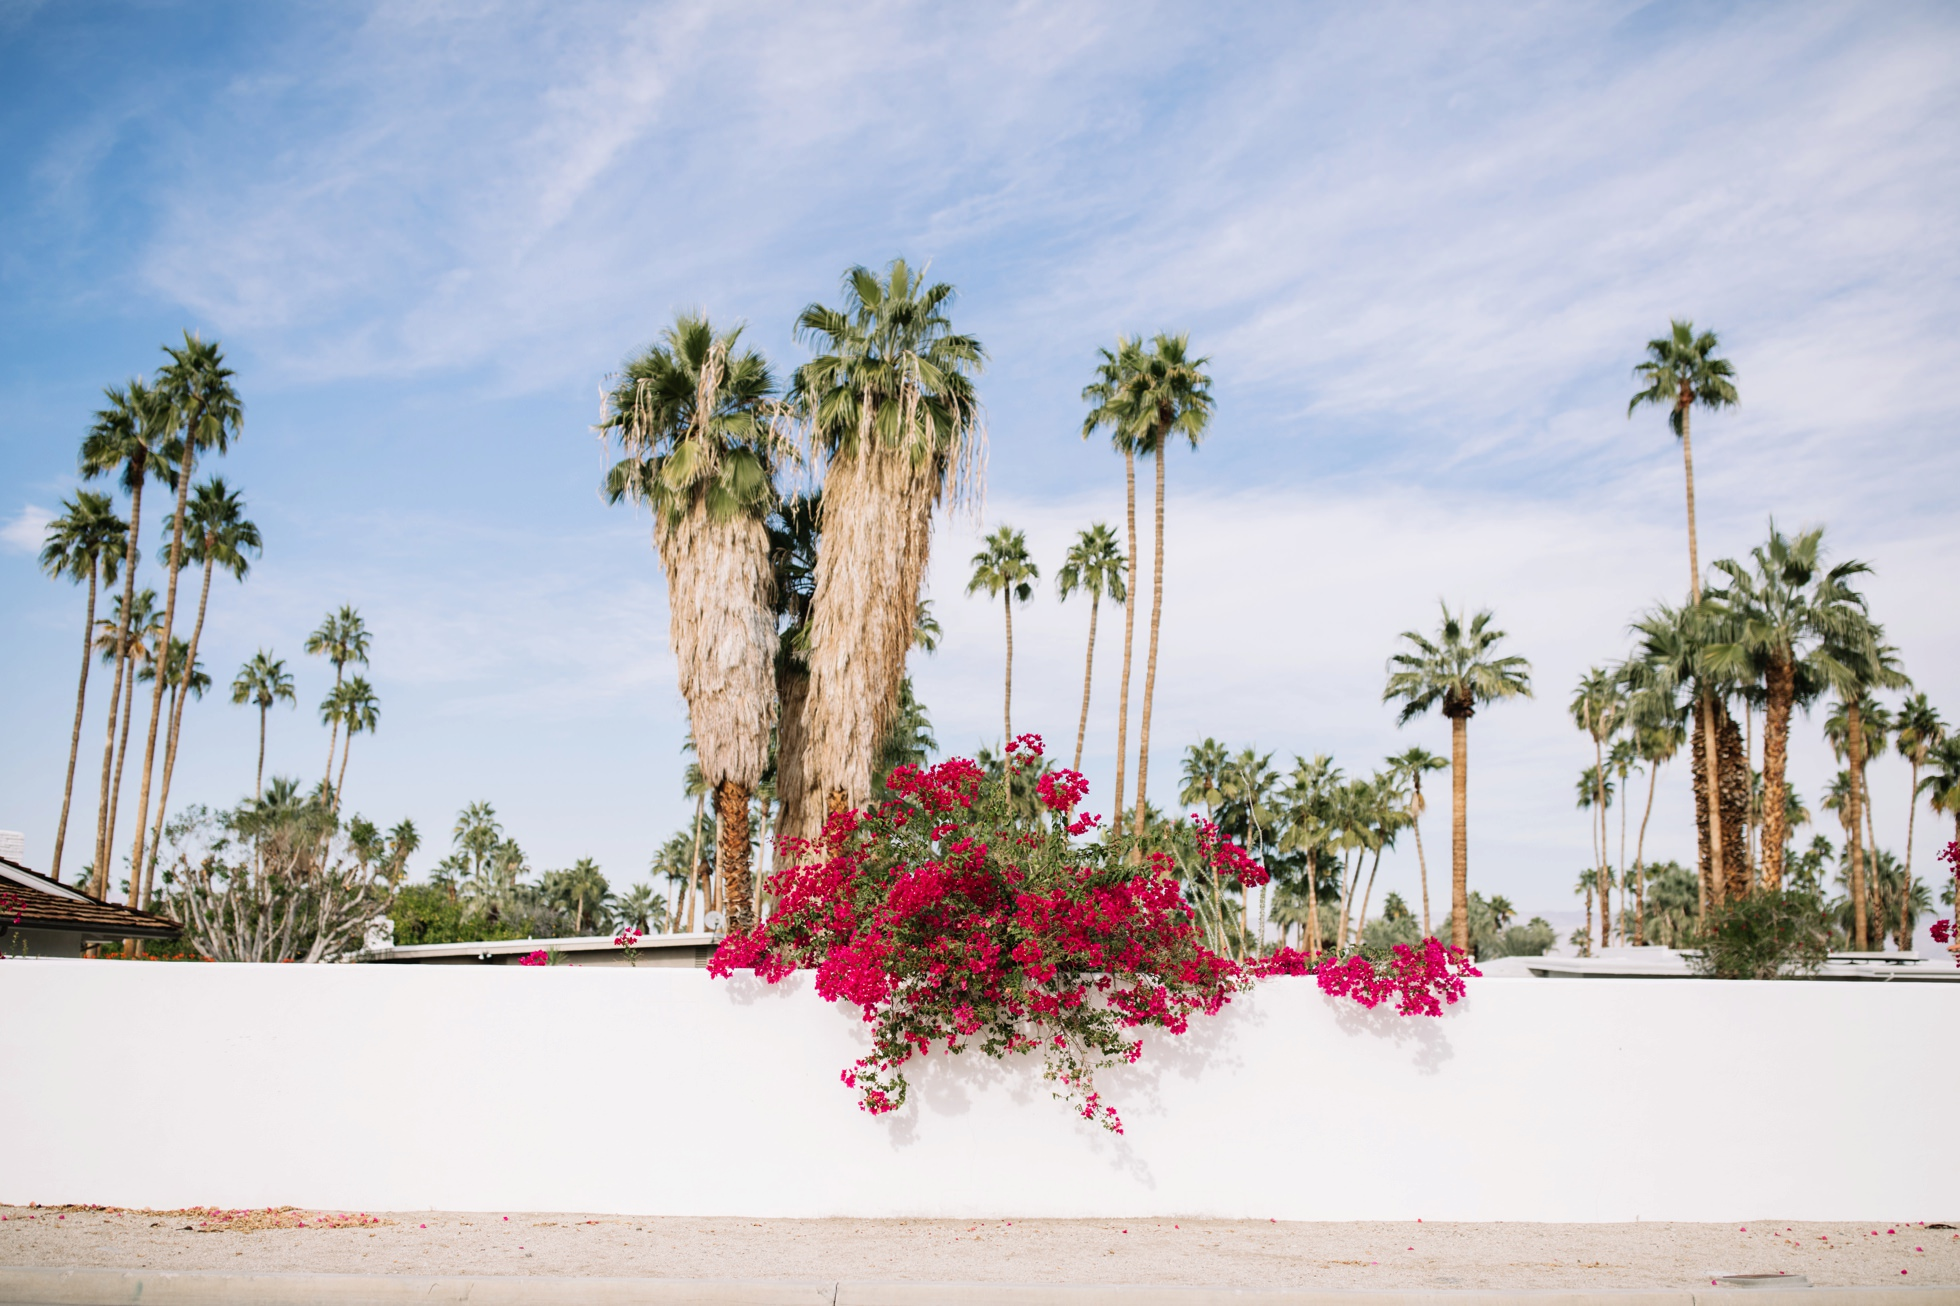 0037-palm-springs-bougainvillea-palm-trees-ca-architecture